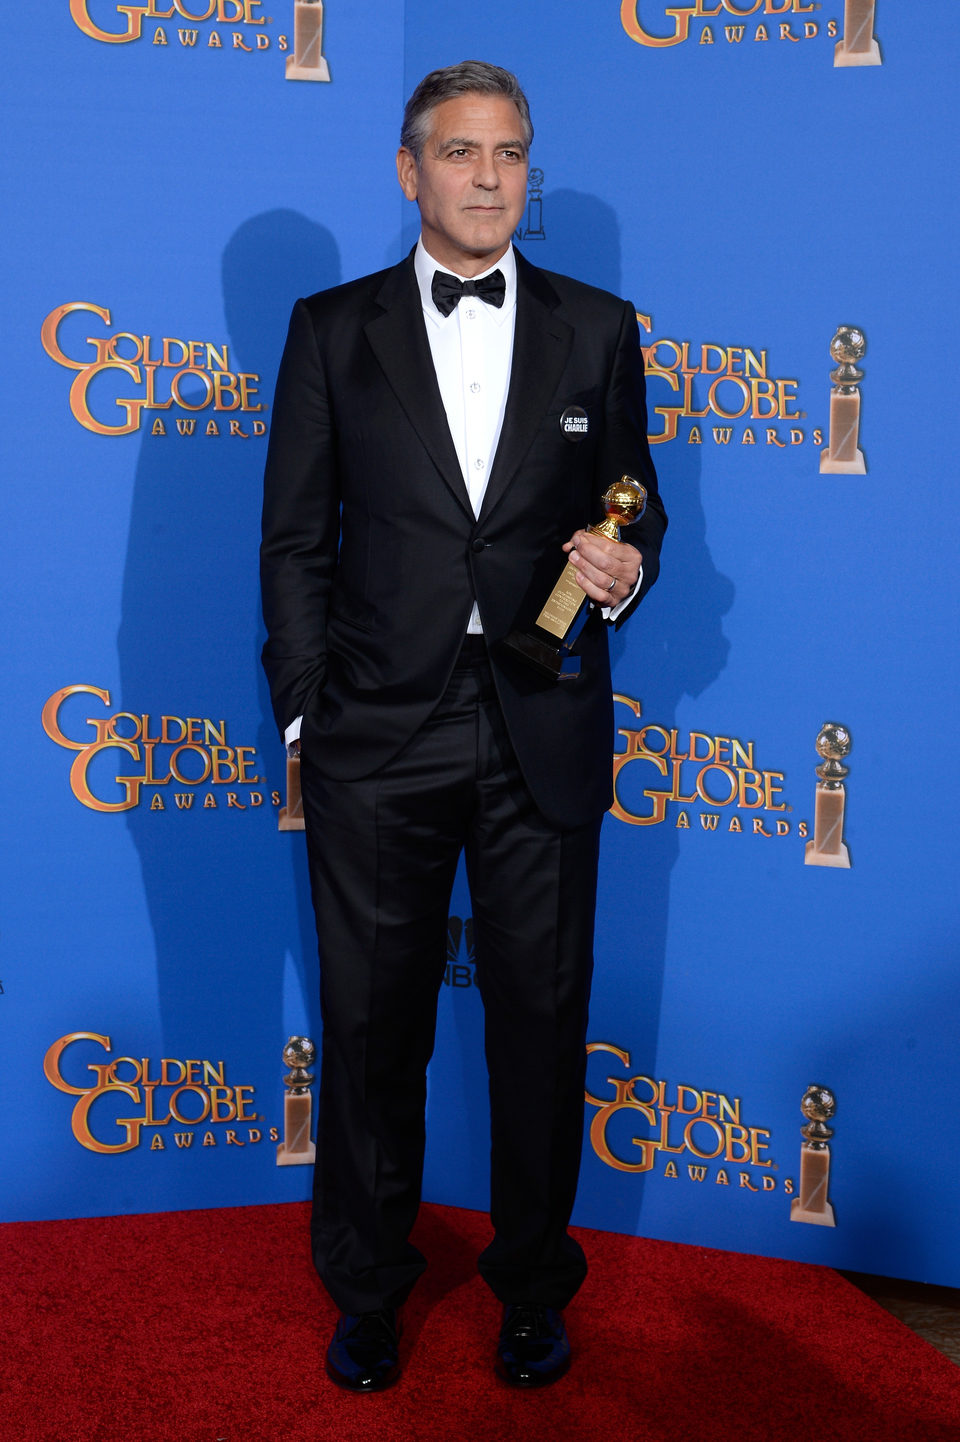 George Clooney, Cecil B. DeMille award of the Golden Globes 2015